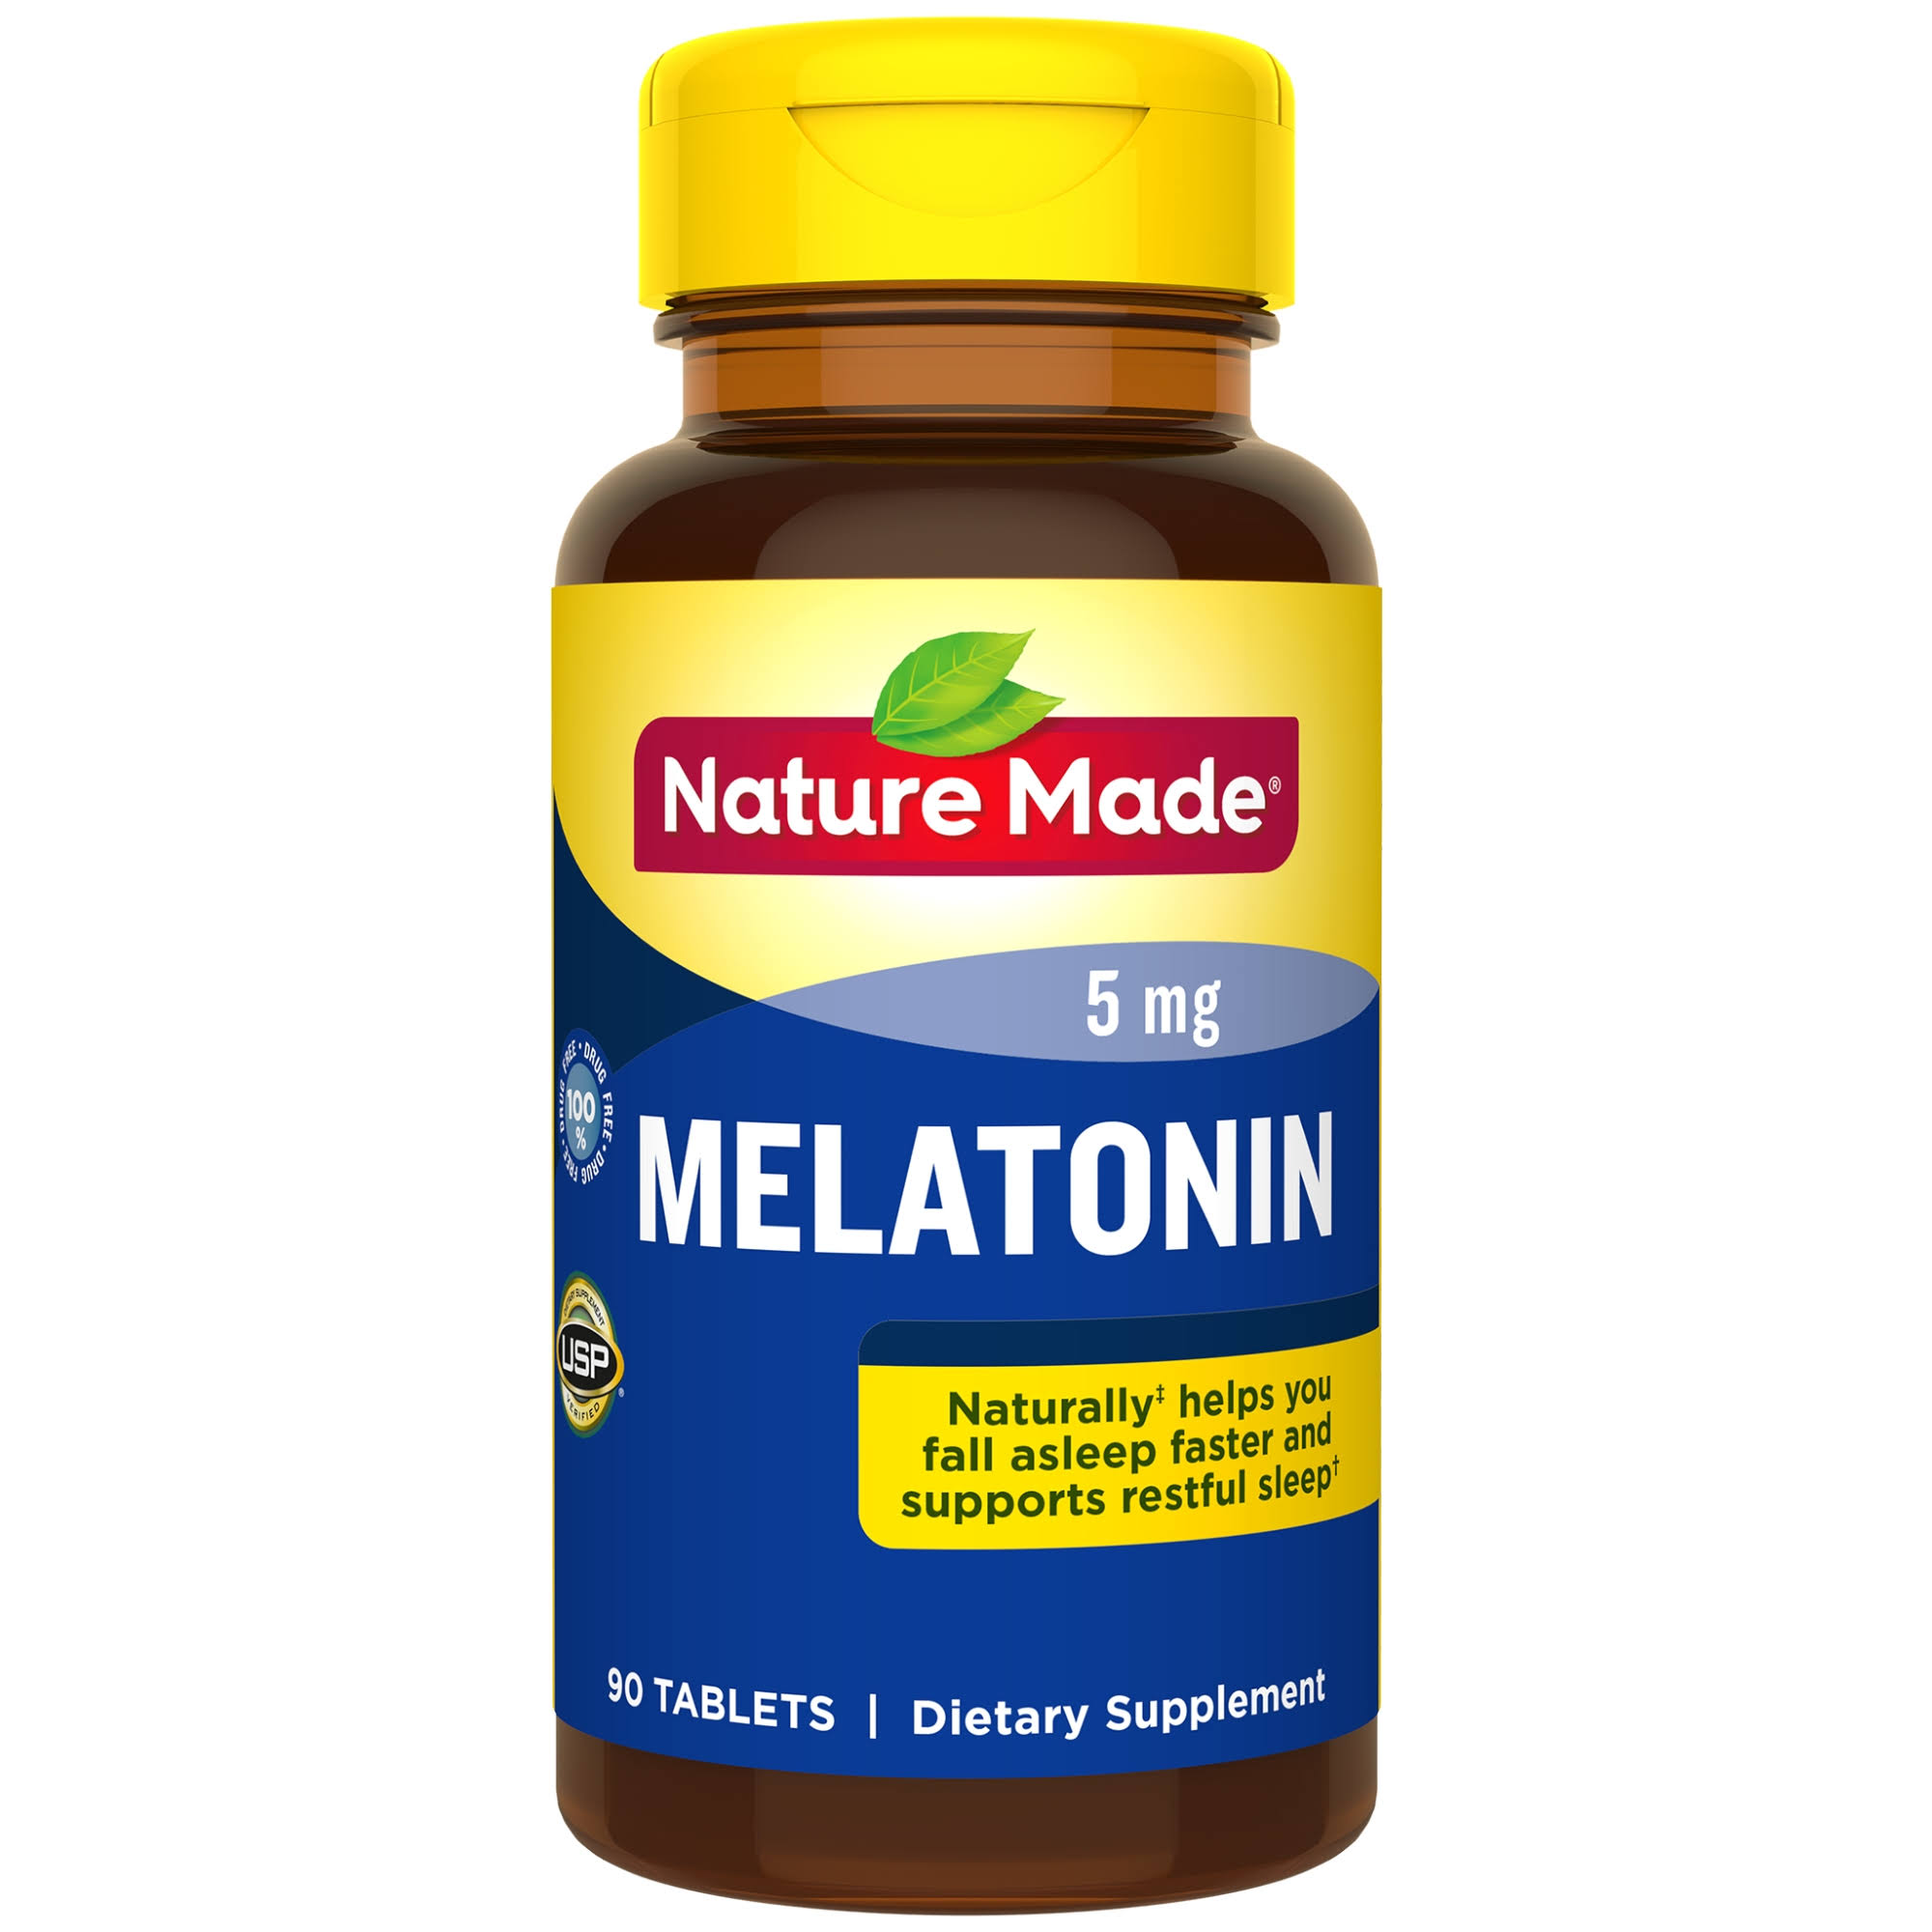 Nature Made Melatonin - 5mg, 90 Tablets